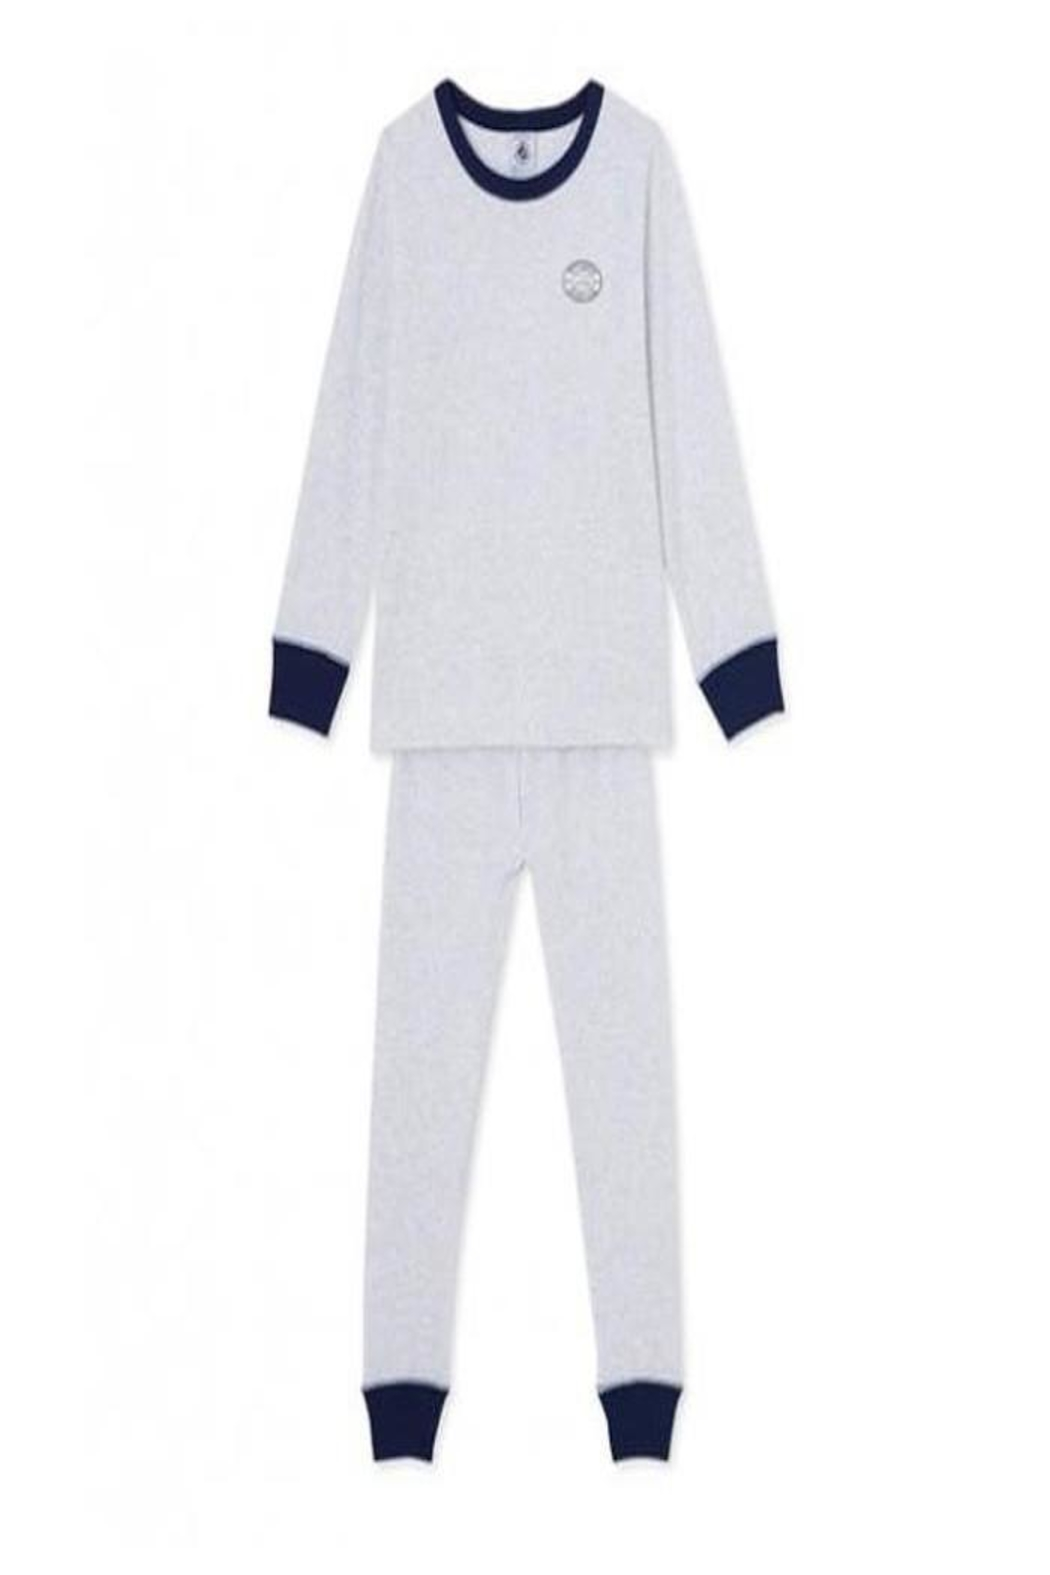 Petit Bateau Grey Striped Pajamas - Main Image